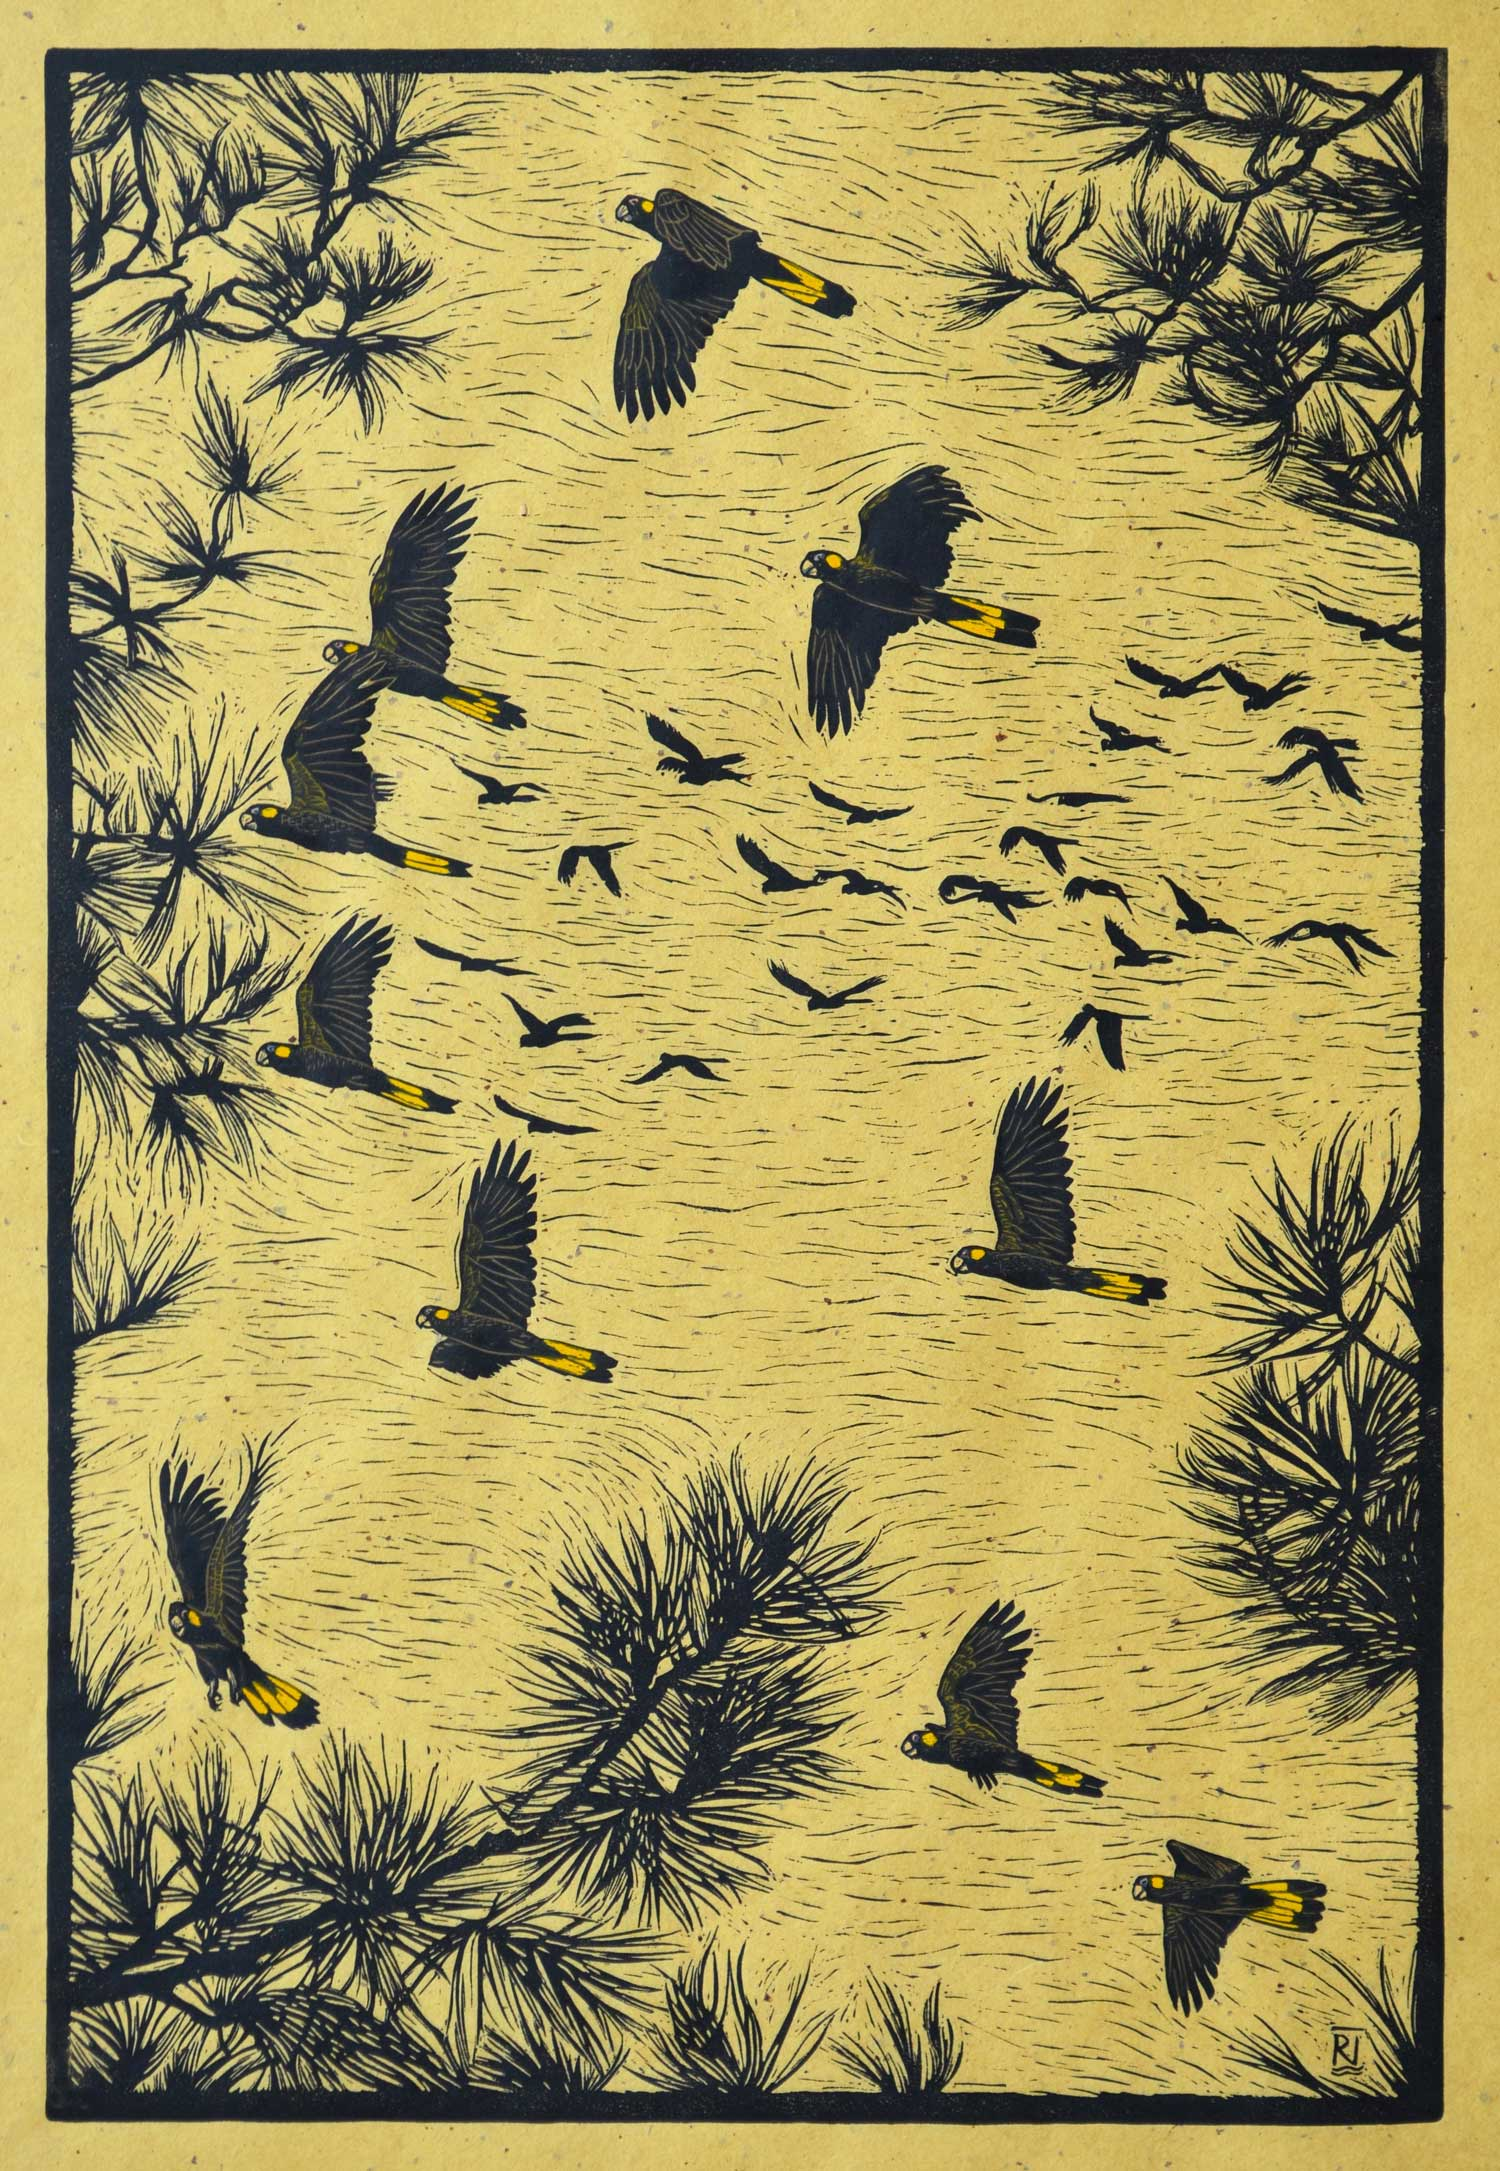 Yellow-tailed black cockatoos in flight  63 x 42 cm, Edition of 50  Hand-coloured linocut on handmade Japanese paper  $1,100